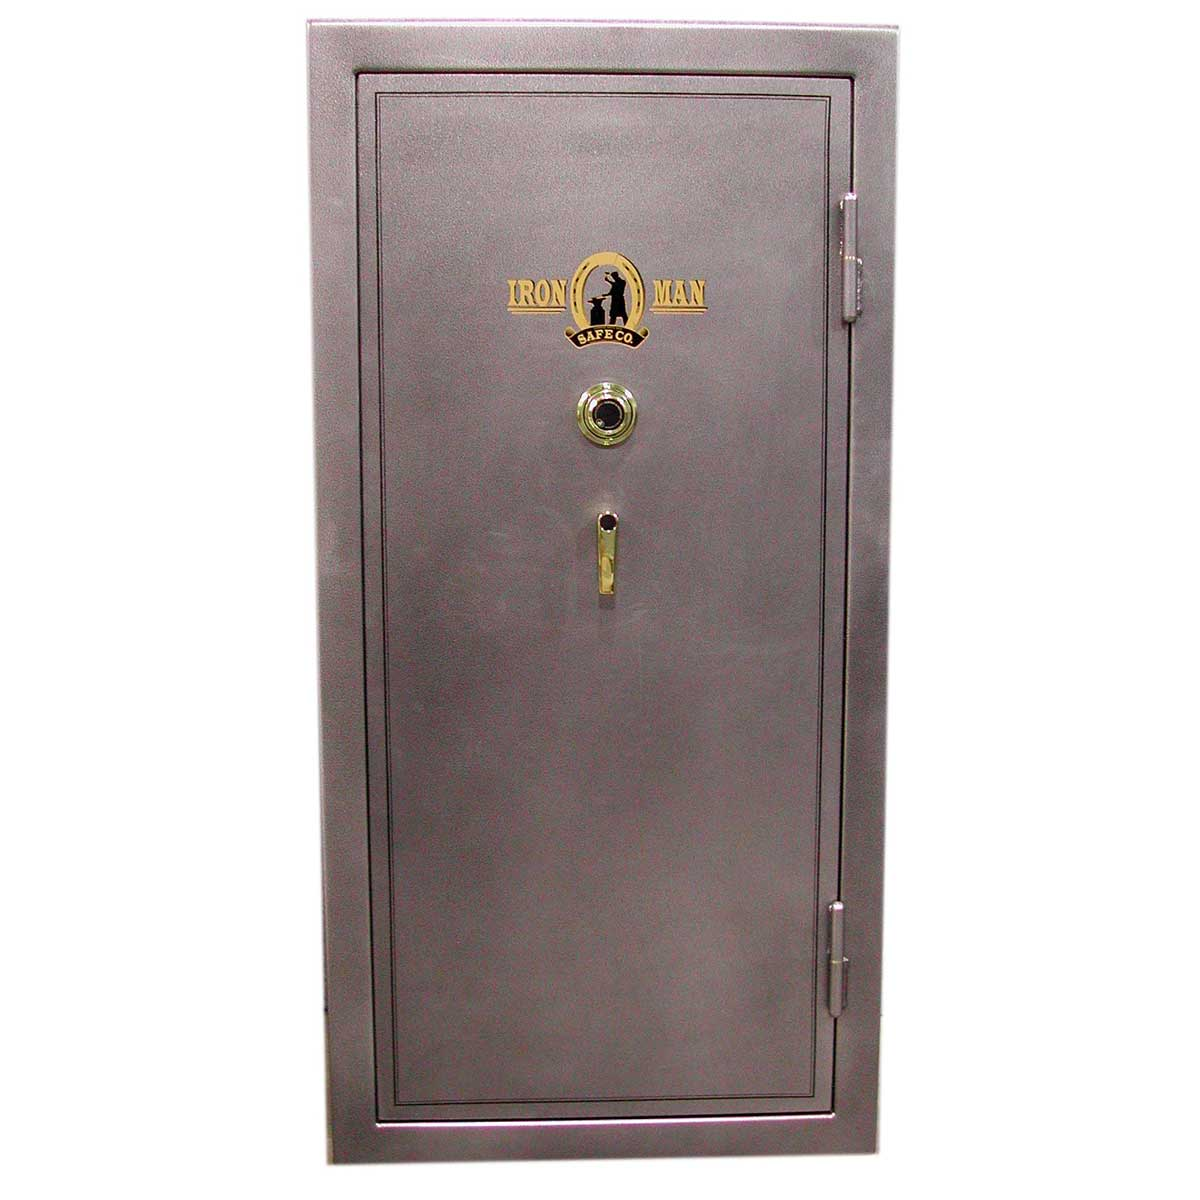 Ironman Safe - 7236 - 5000T Series - 34 Gun Capacity